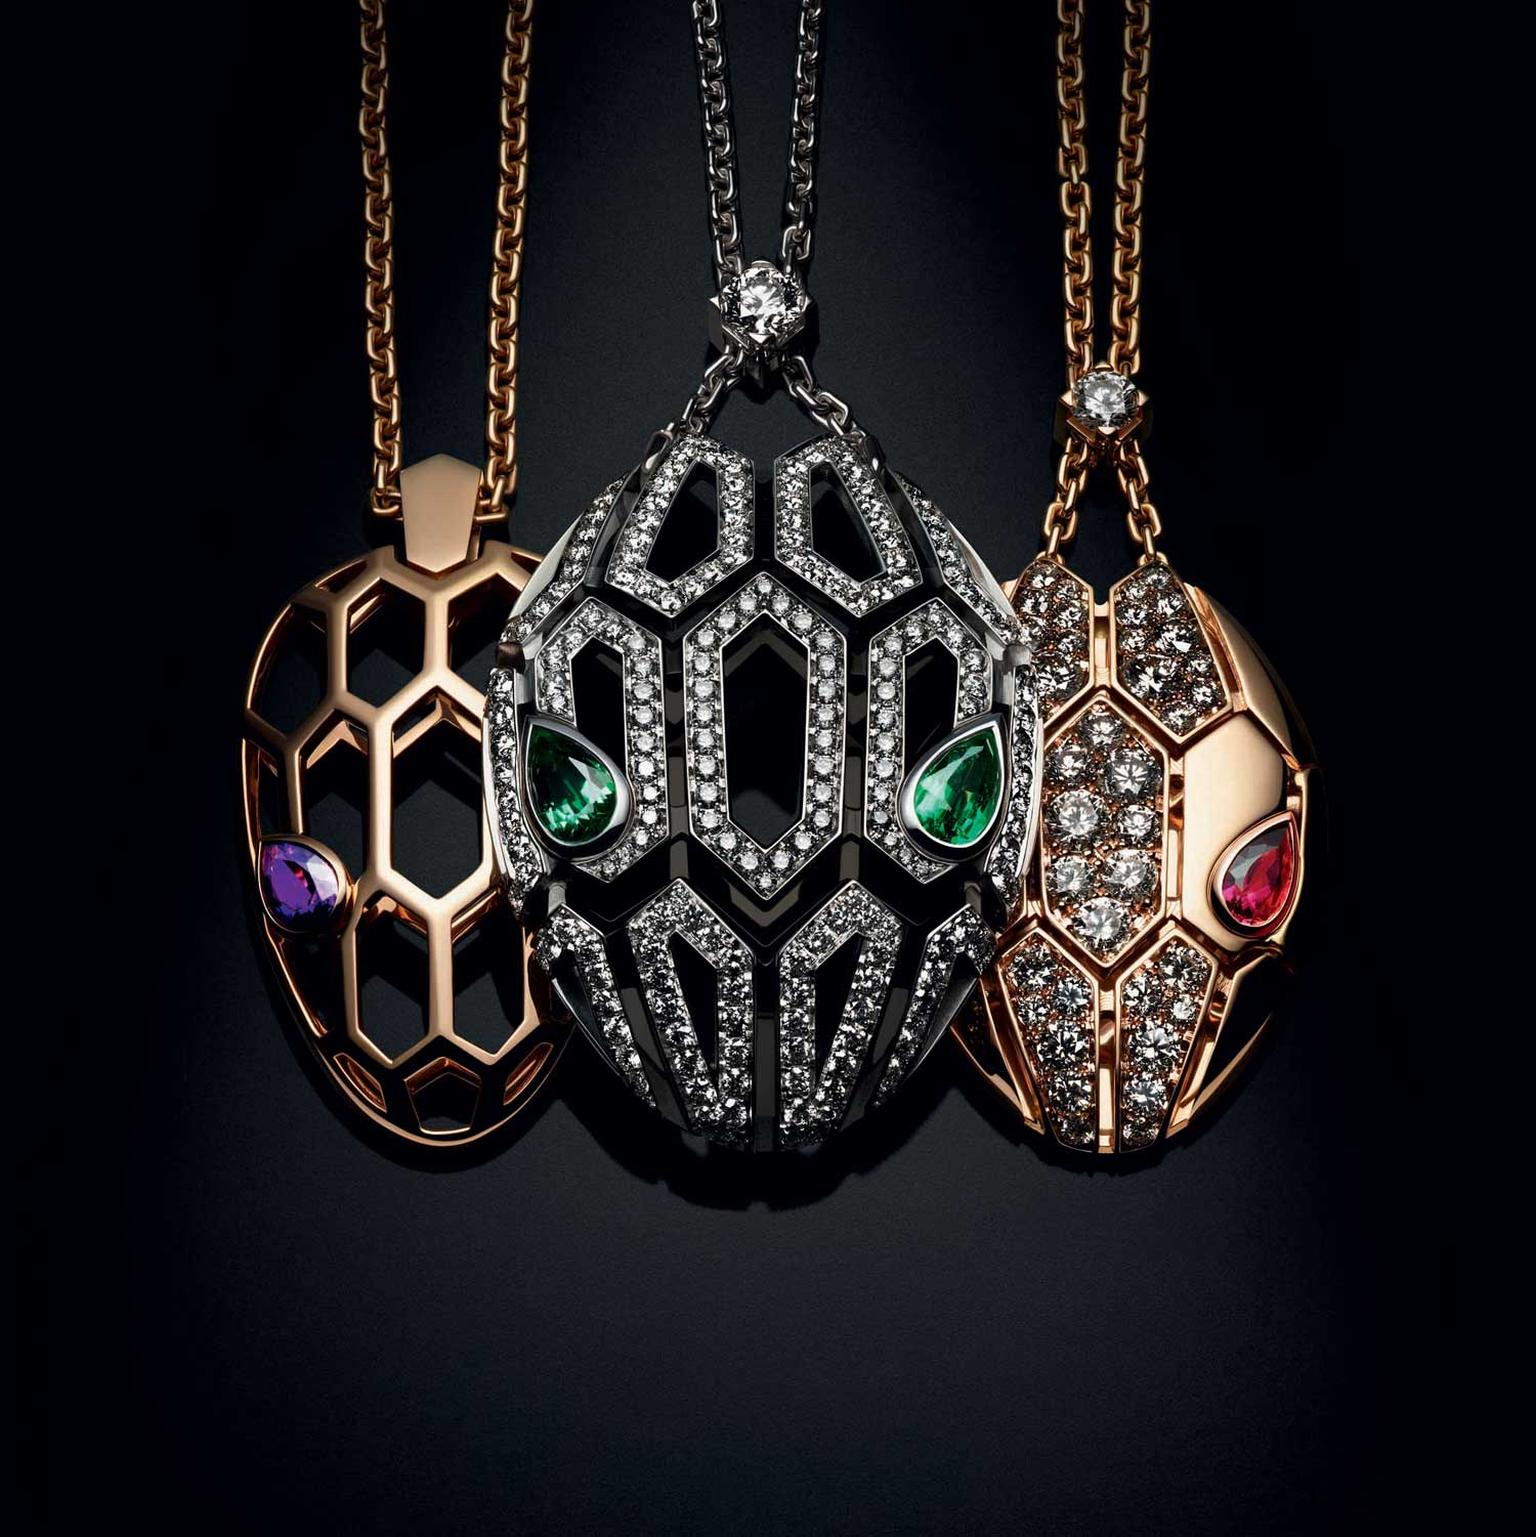 Bulgari Serpenti Seduttori group shot necklaces